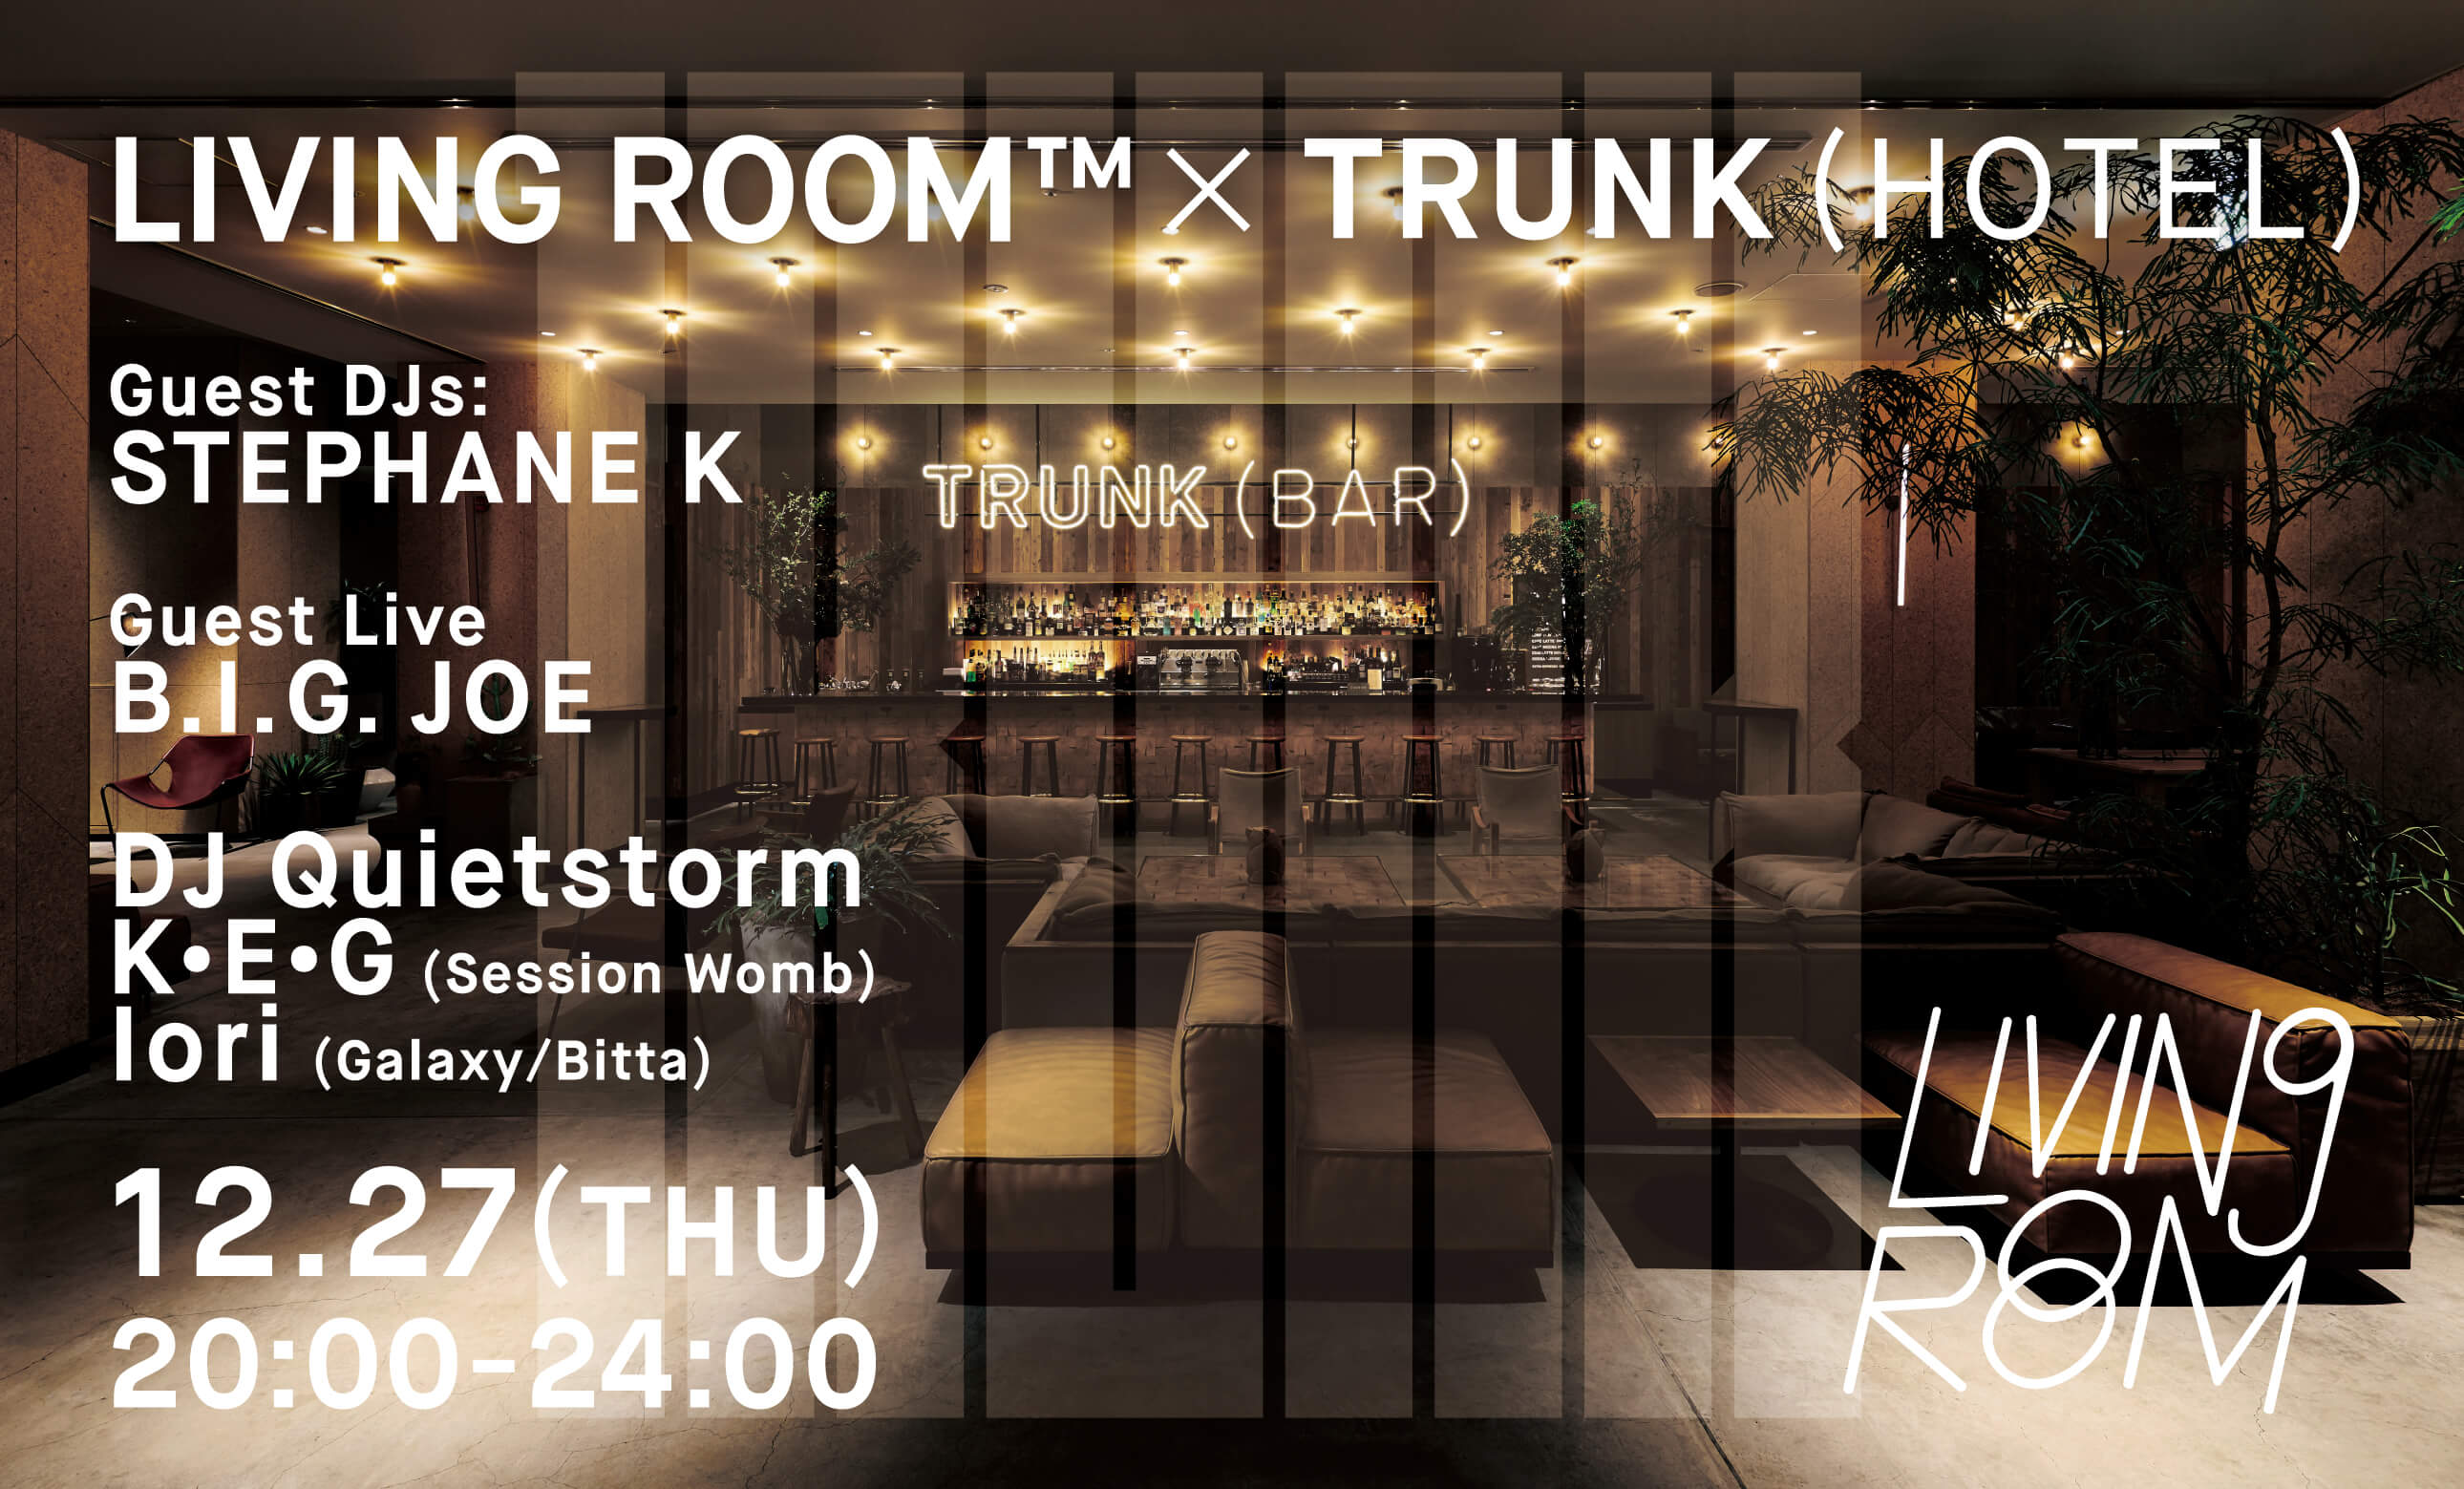 LIVING ROOM™️ at TRUNK(HOTEL)